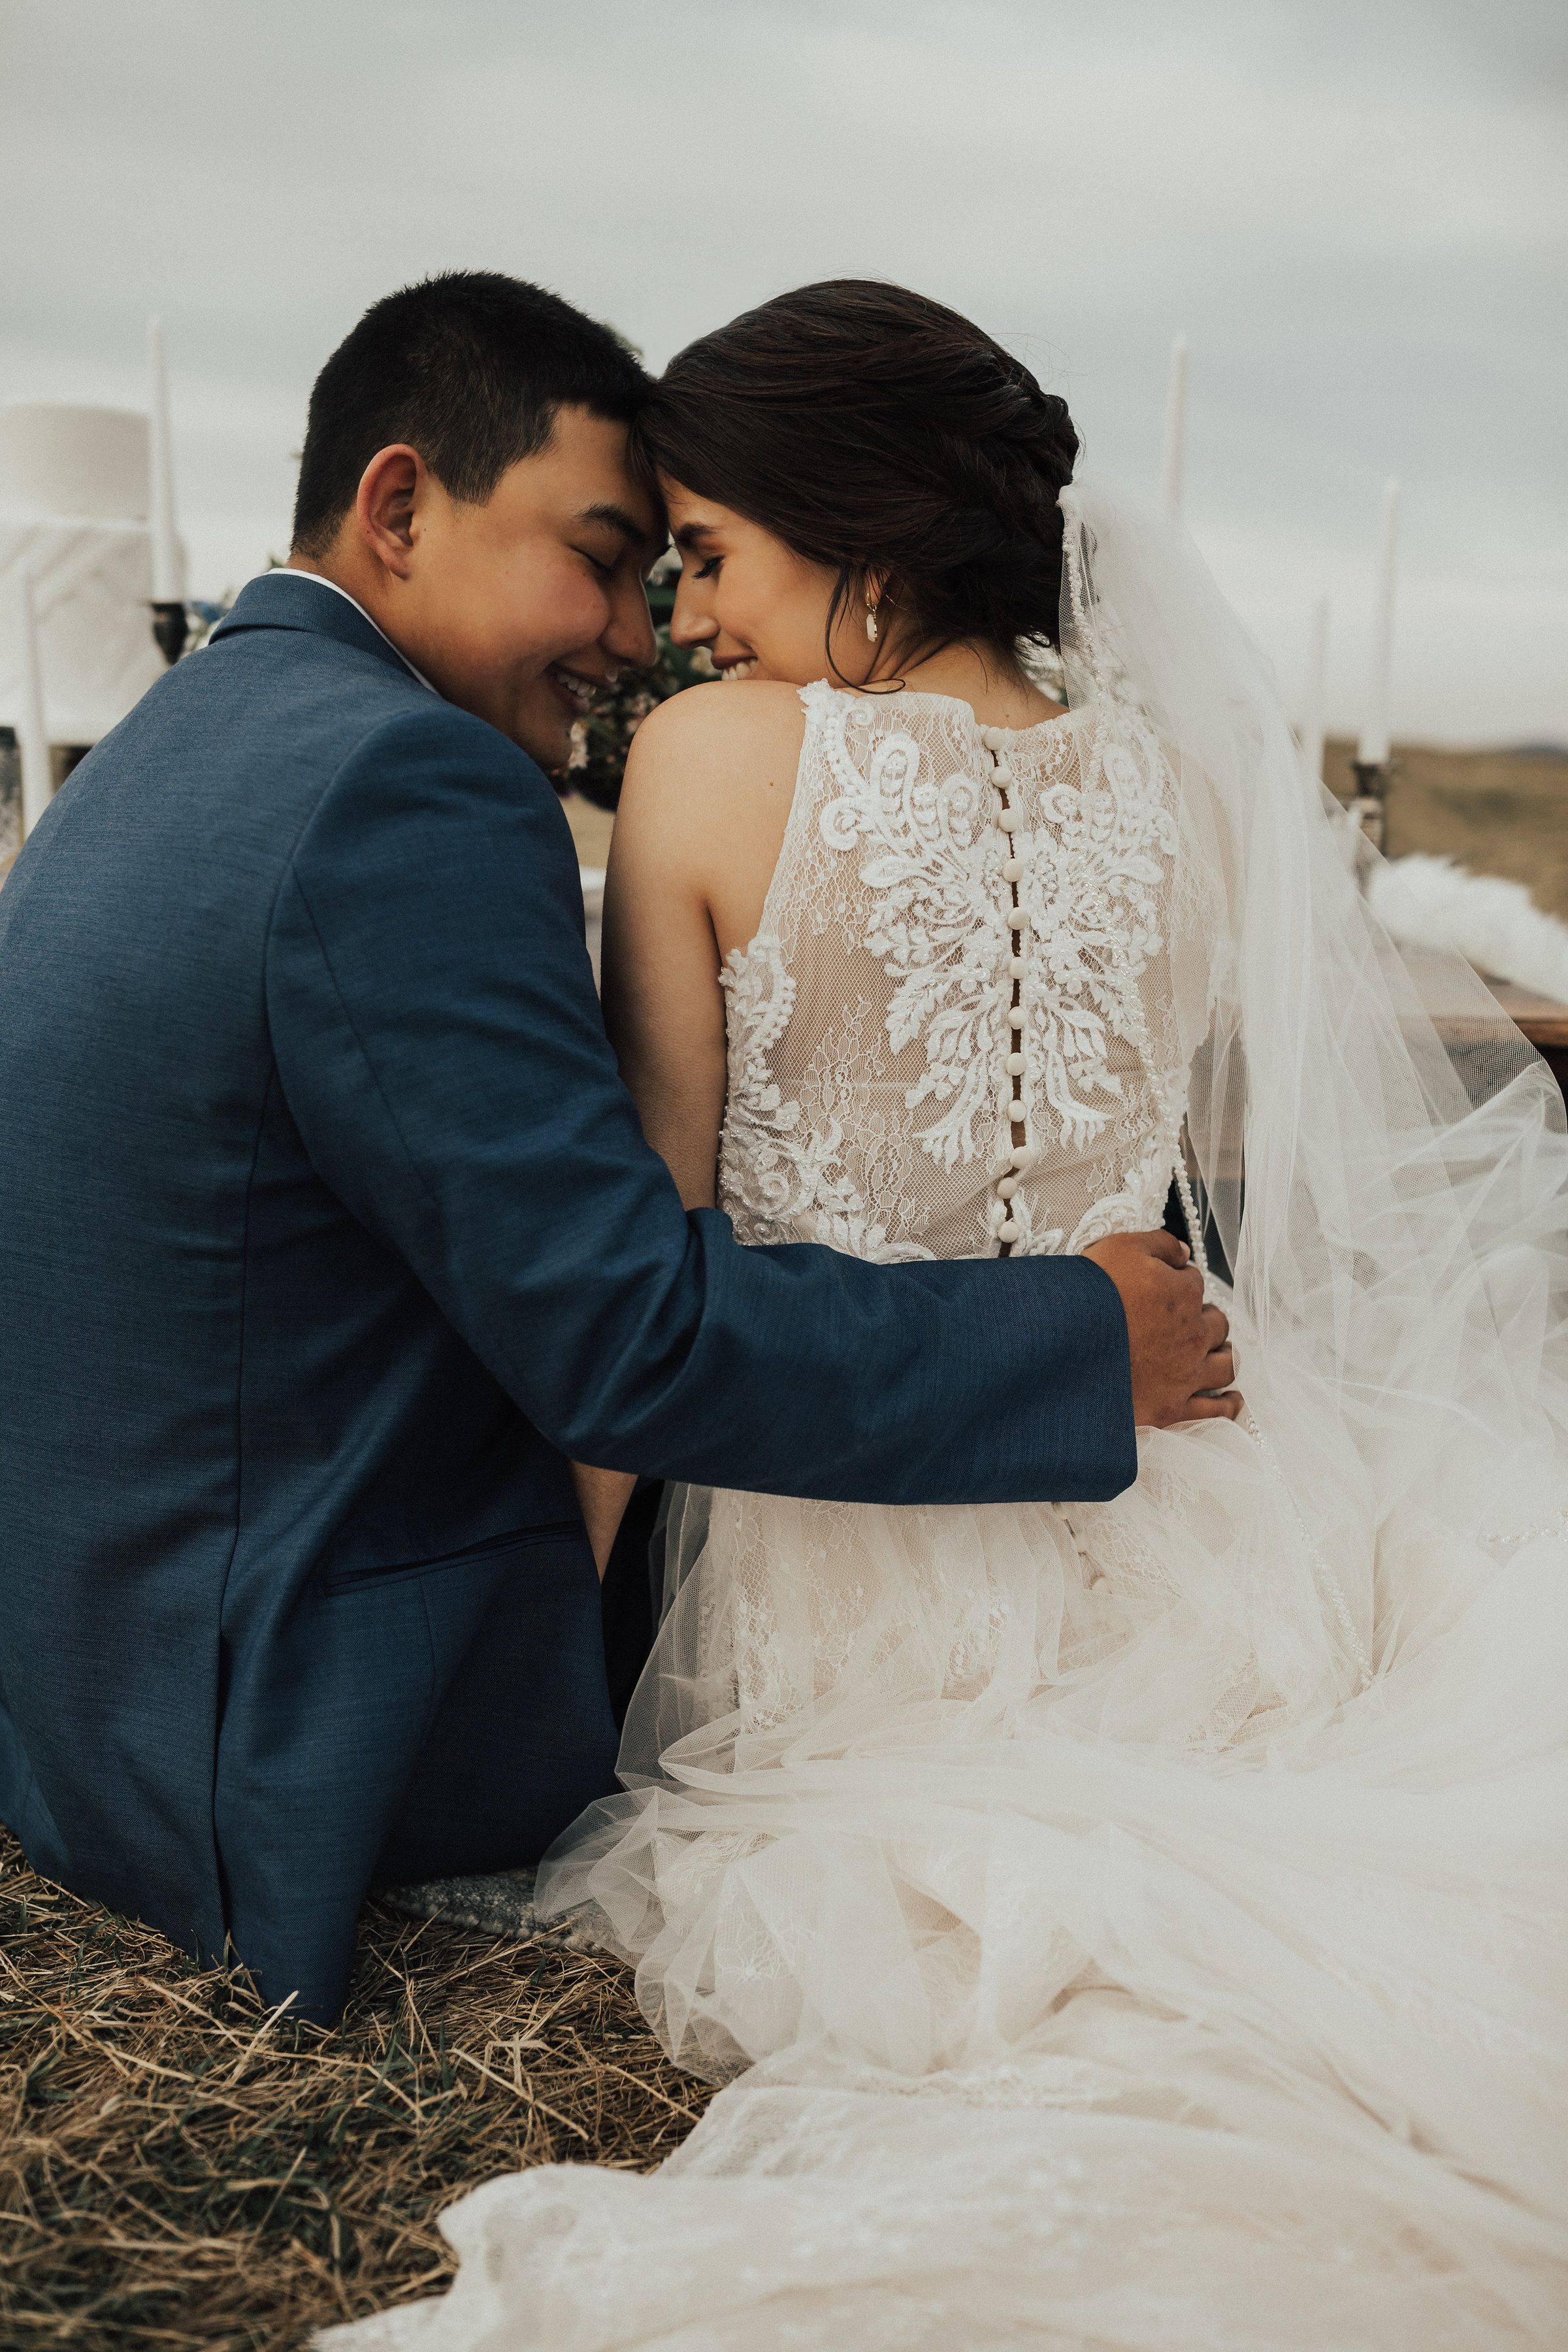 Wedding Dress By Allure Bridals From Best Bride Prom Tux In